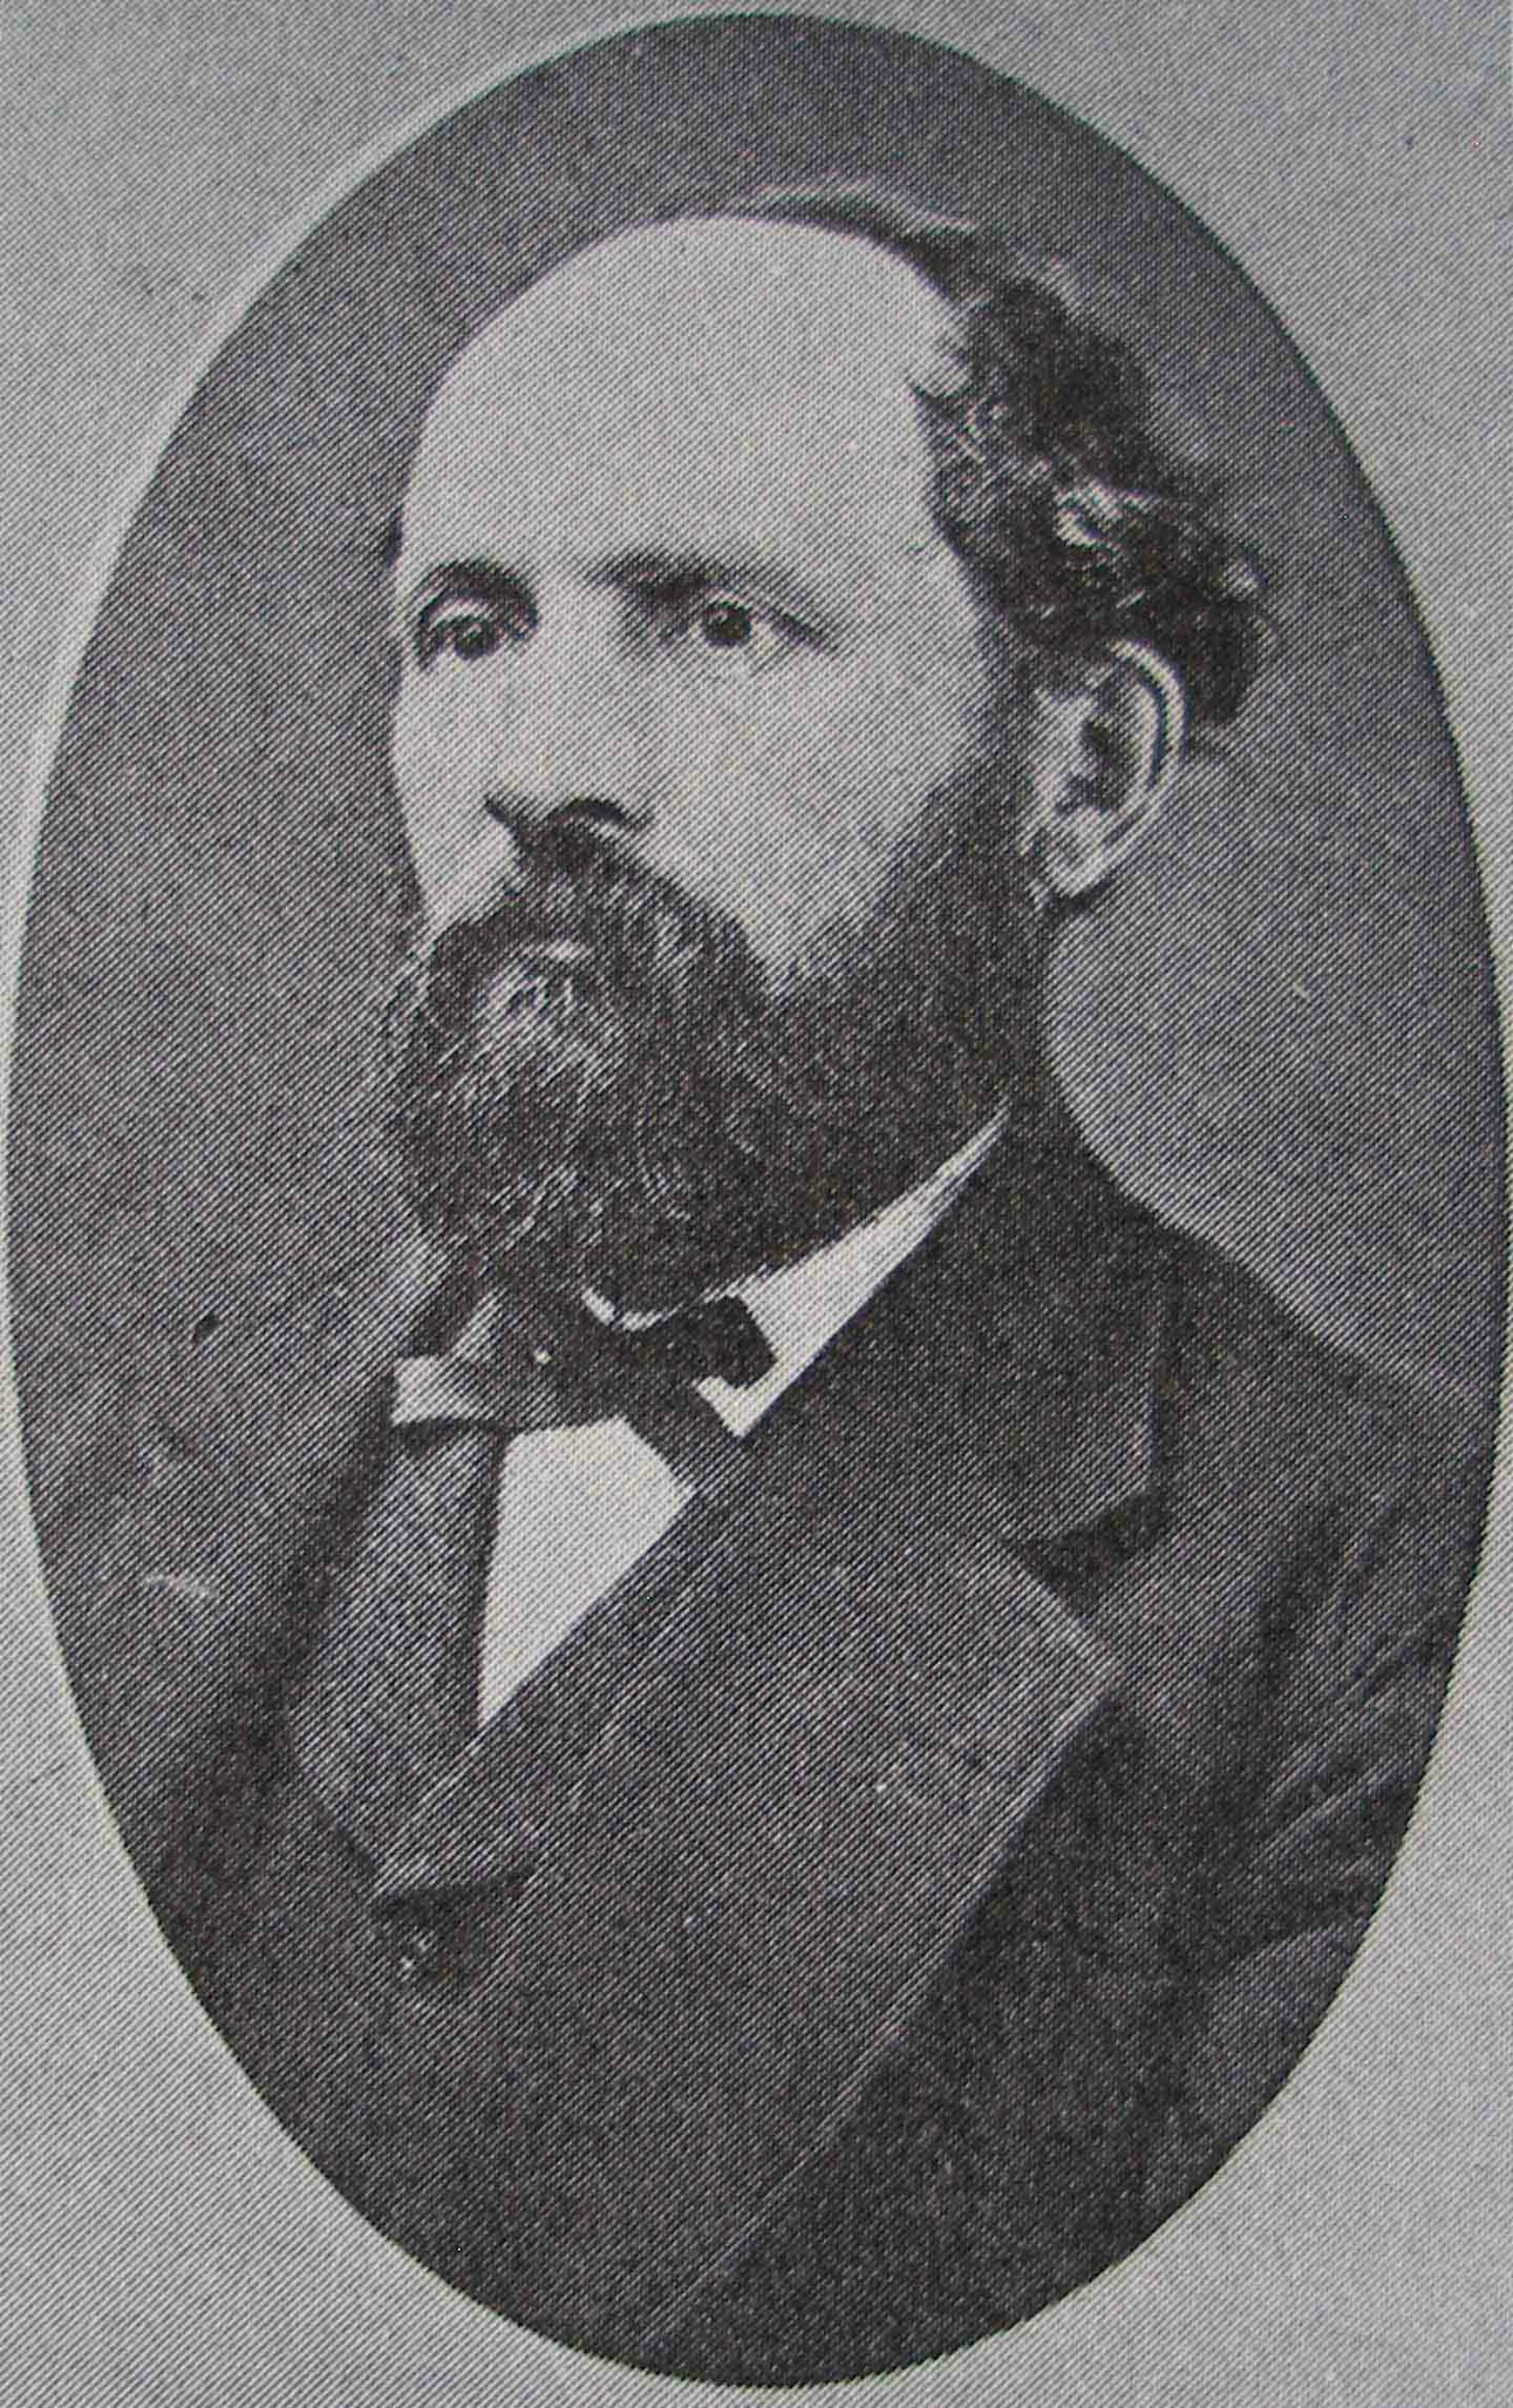 Marshall Wilder Waitt (died 1892, aged 60)